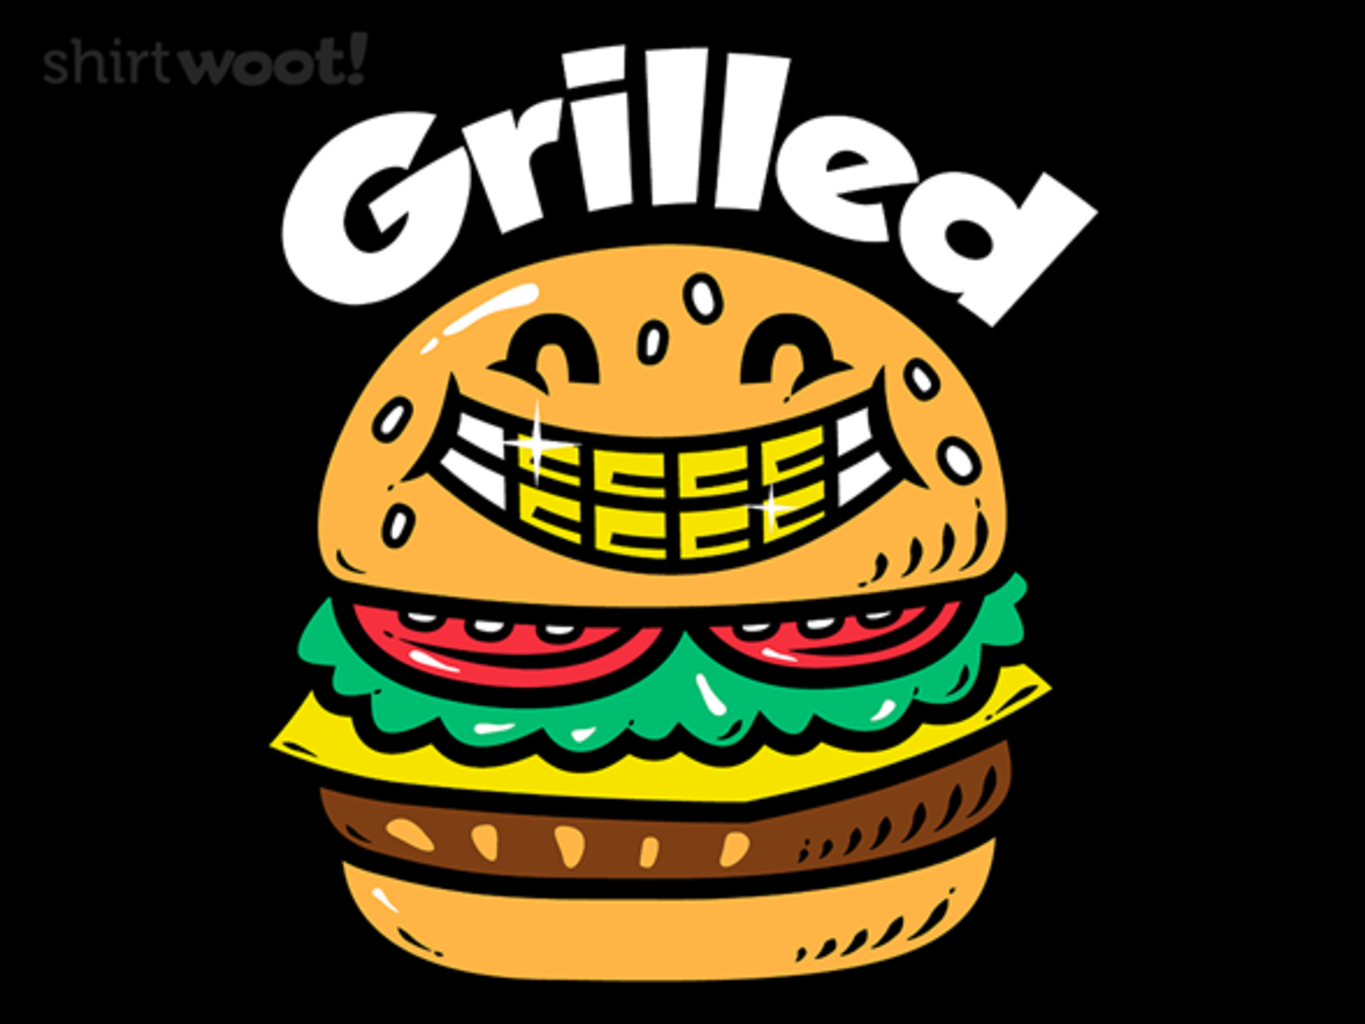 Woot!: Grilled